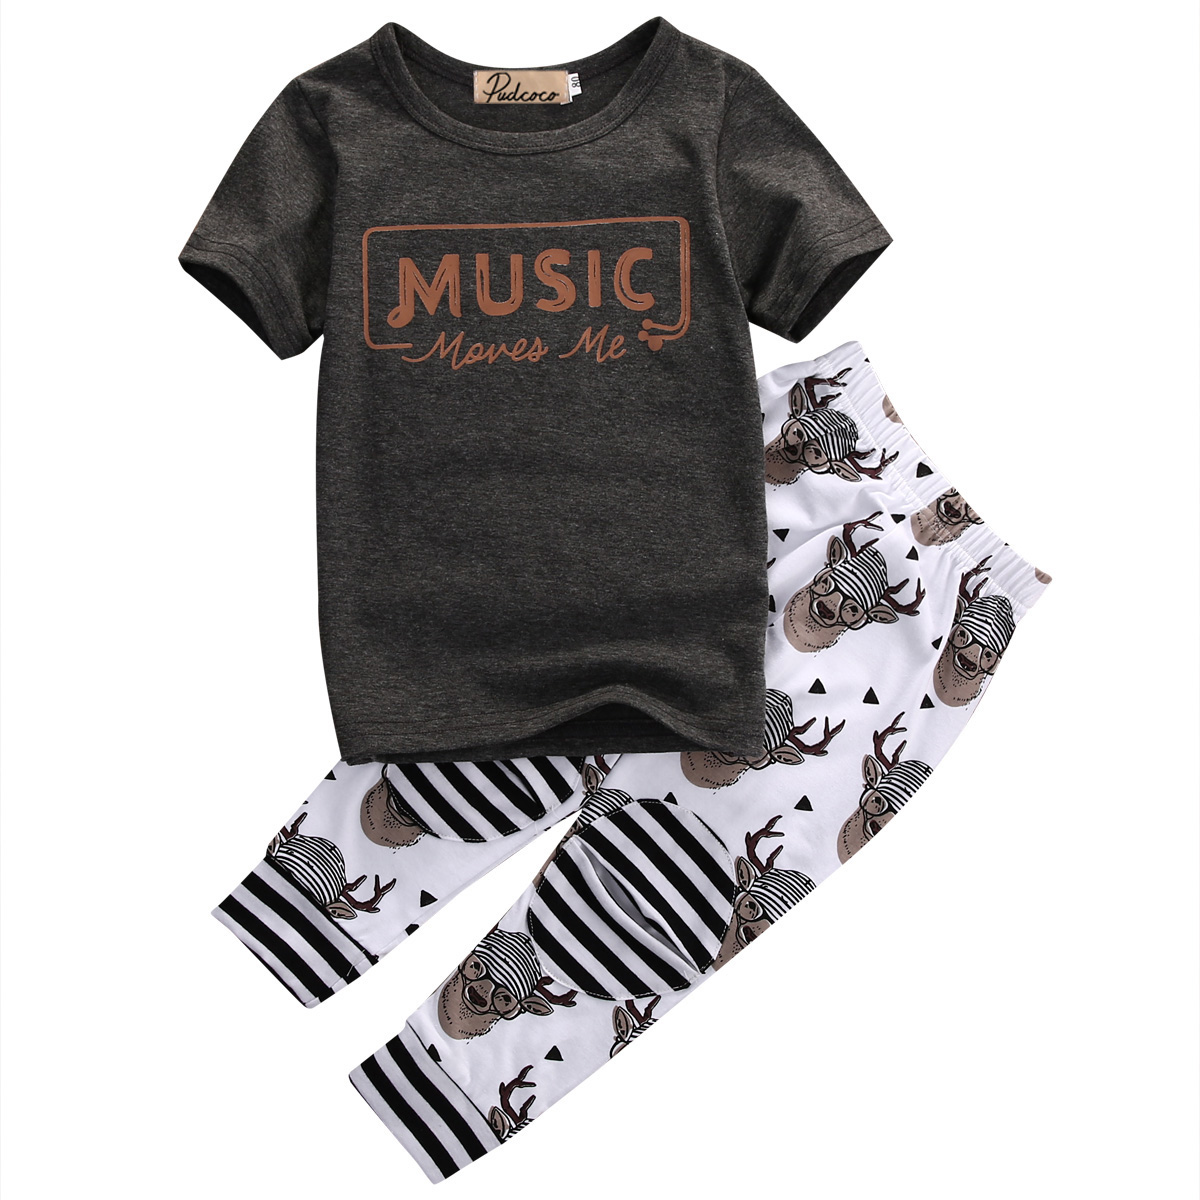 Toddler Baby Boys Girls Clothes Set Summer Letter Kid T Shirt Tops Pants Trousers Children Clothing Boy Girl Outfits Set 2Pcs